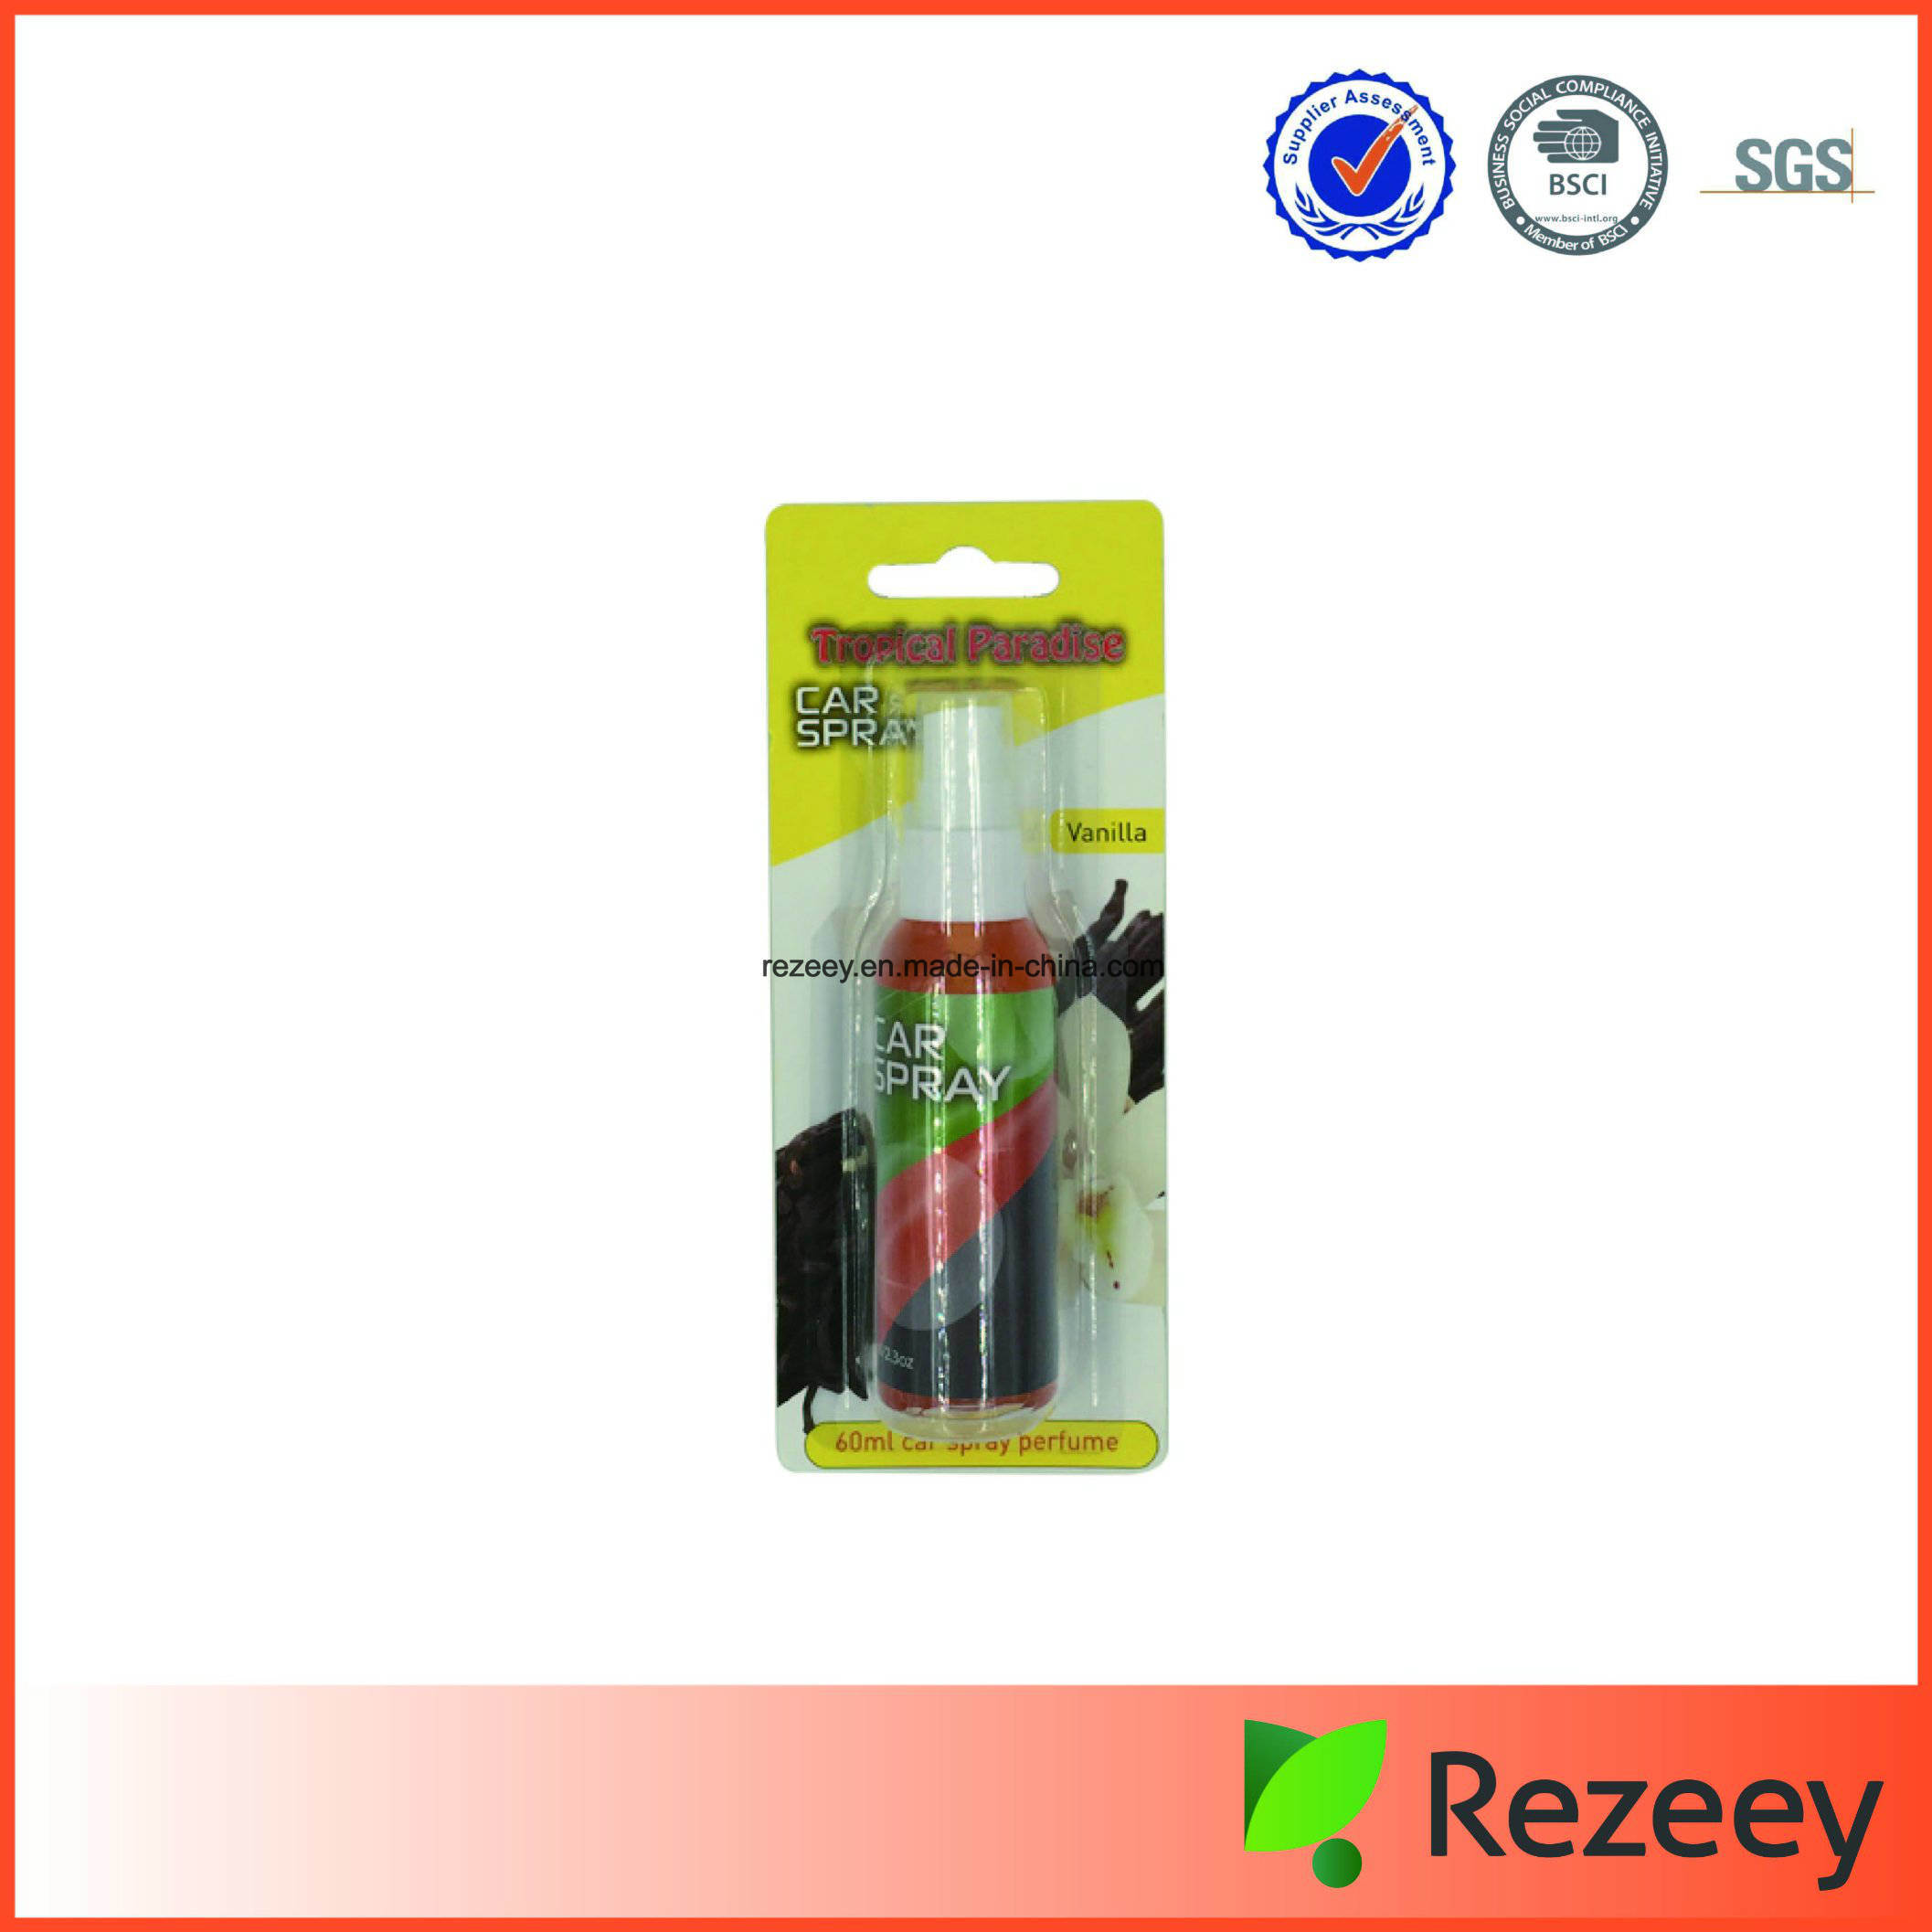 Safety Spray Air Freshener for Car or Home